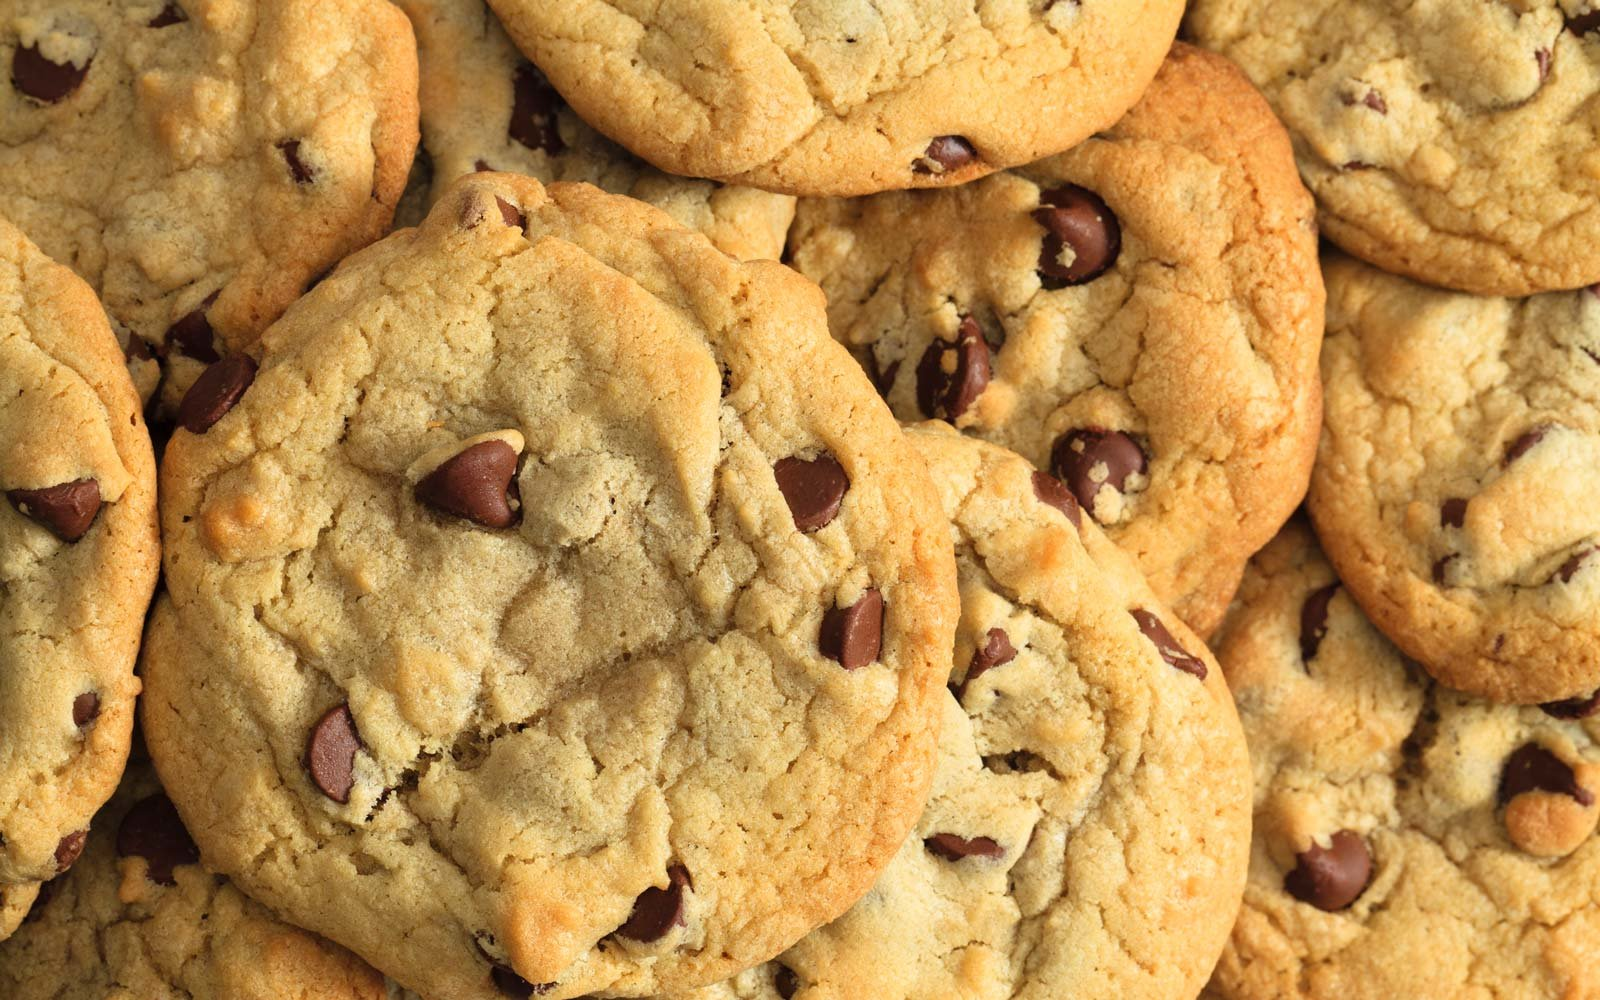 Chocolate chip cookies fill the frame